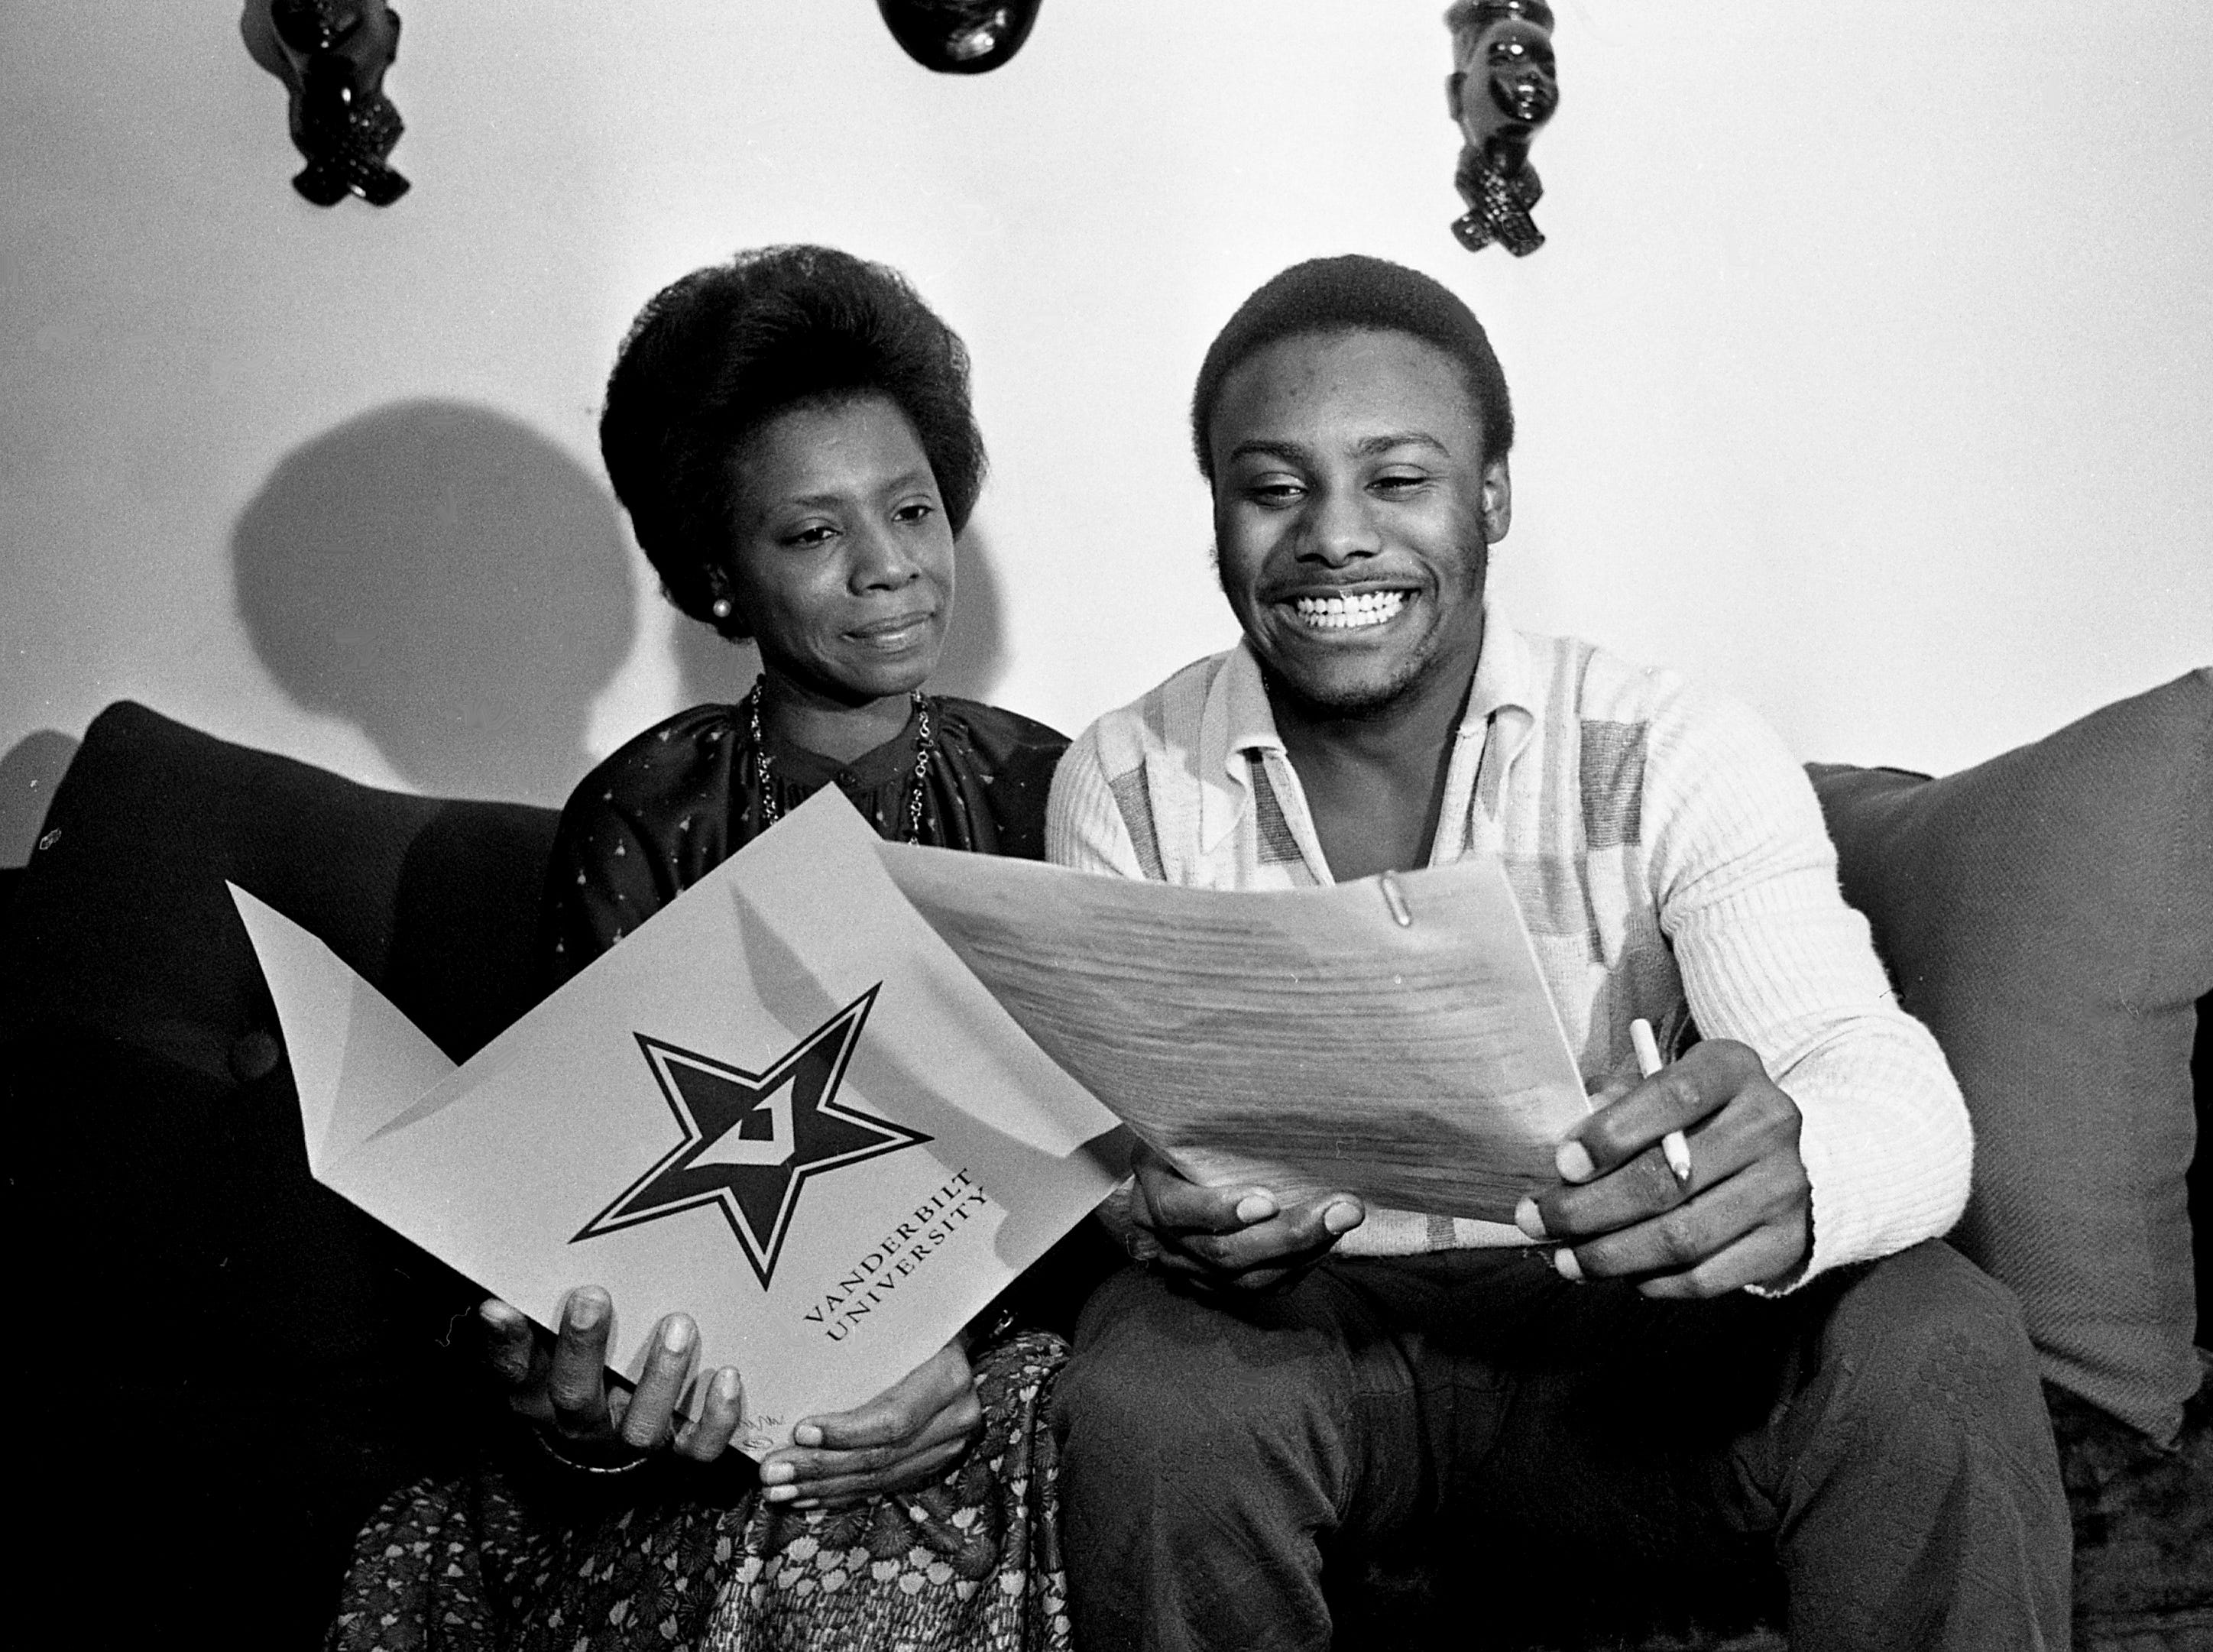 With his mother at his side, Hillsboro High star running back Lucius High looks over the grant he signed at home Feb. 9, 1979, to become the 23rd recruit for Vanderbilt University new head football coach George MacIntyre. High ranked as the NIL's second-leading rusher for a career of 3,401 yards in three years, just 53 behind record-holder Preston Brown of Maplewood, now a member of Vanderbilt.